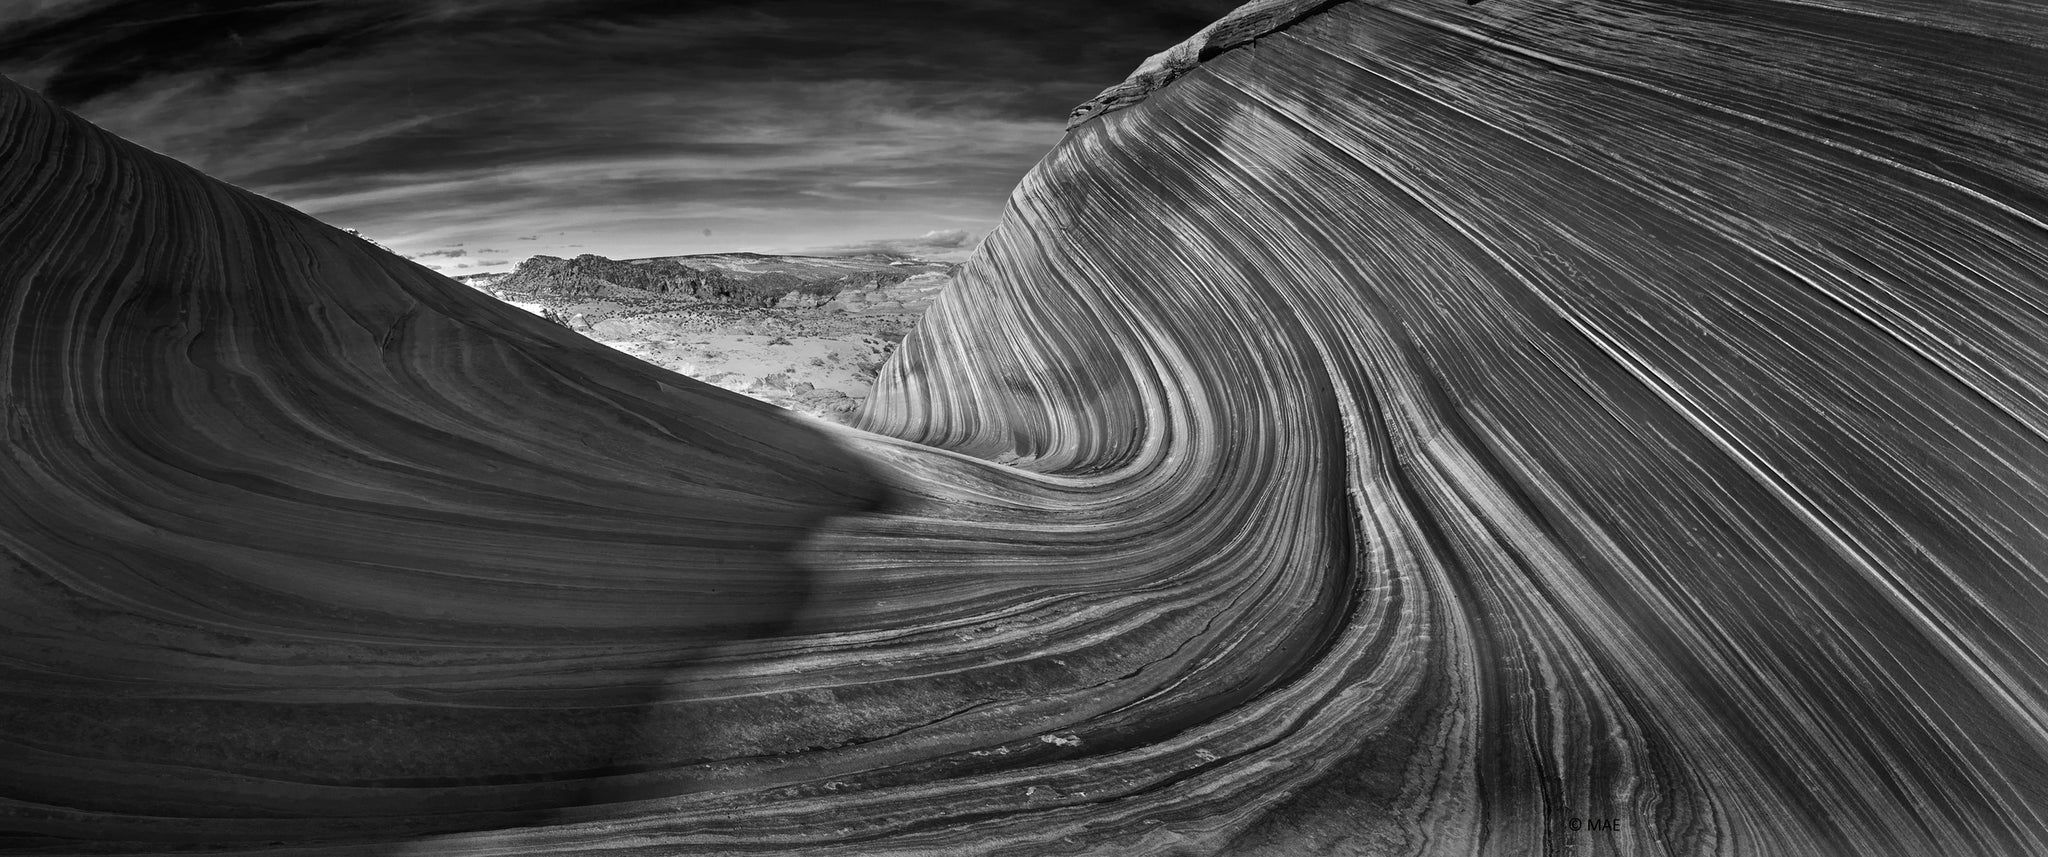 "Black and White Photography of American landscape series - ""The Wave, Paria Canyon, Arizona"" n.1"